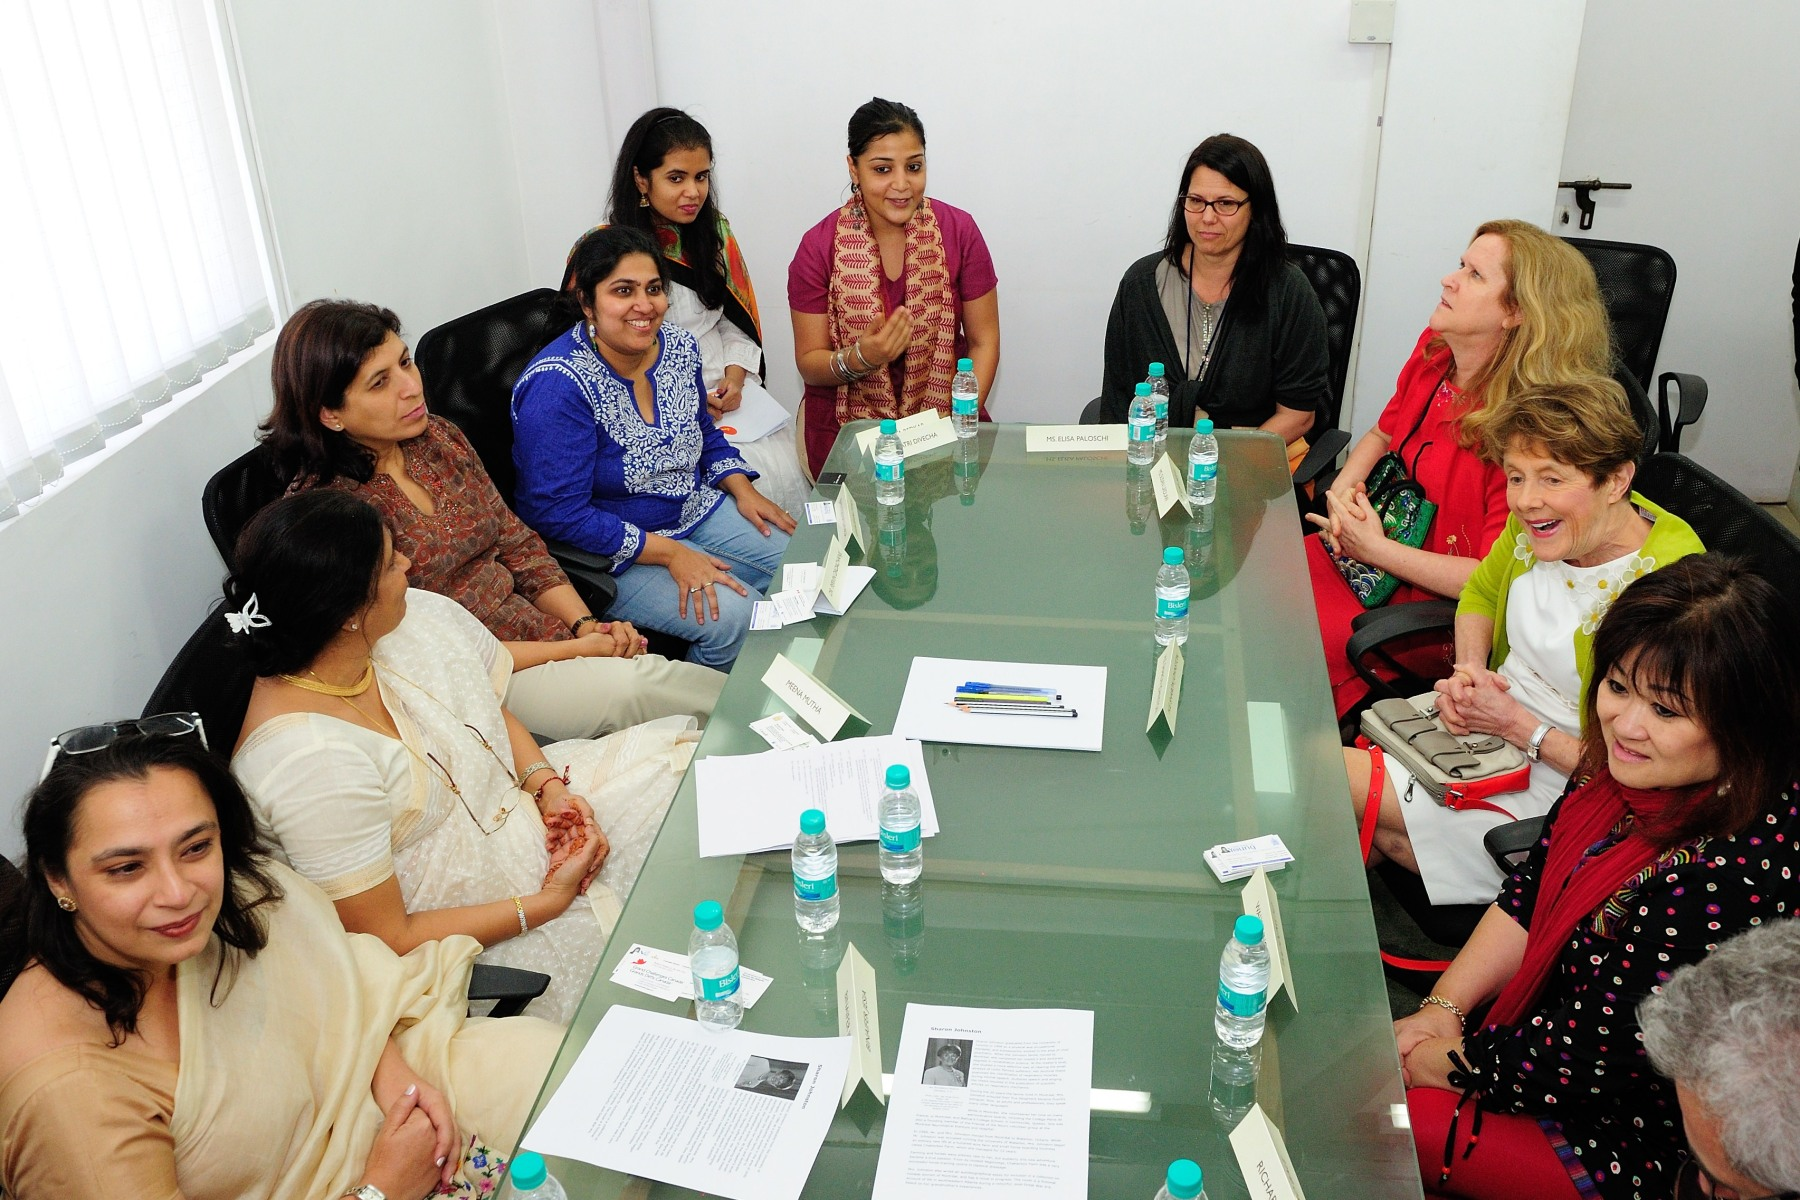 Her Excellency visited Dasra's offices to learn about its unique ability to work with both philanthropists and social entrepreneurs and bring together knowledge, funding and people to catalyze social change.